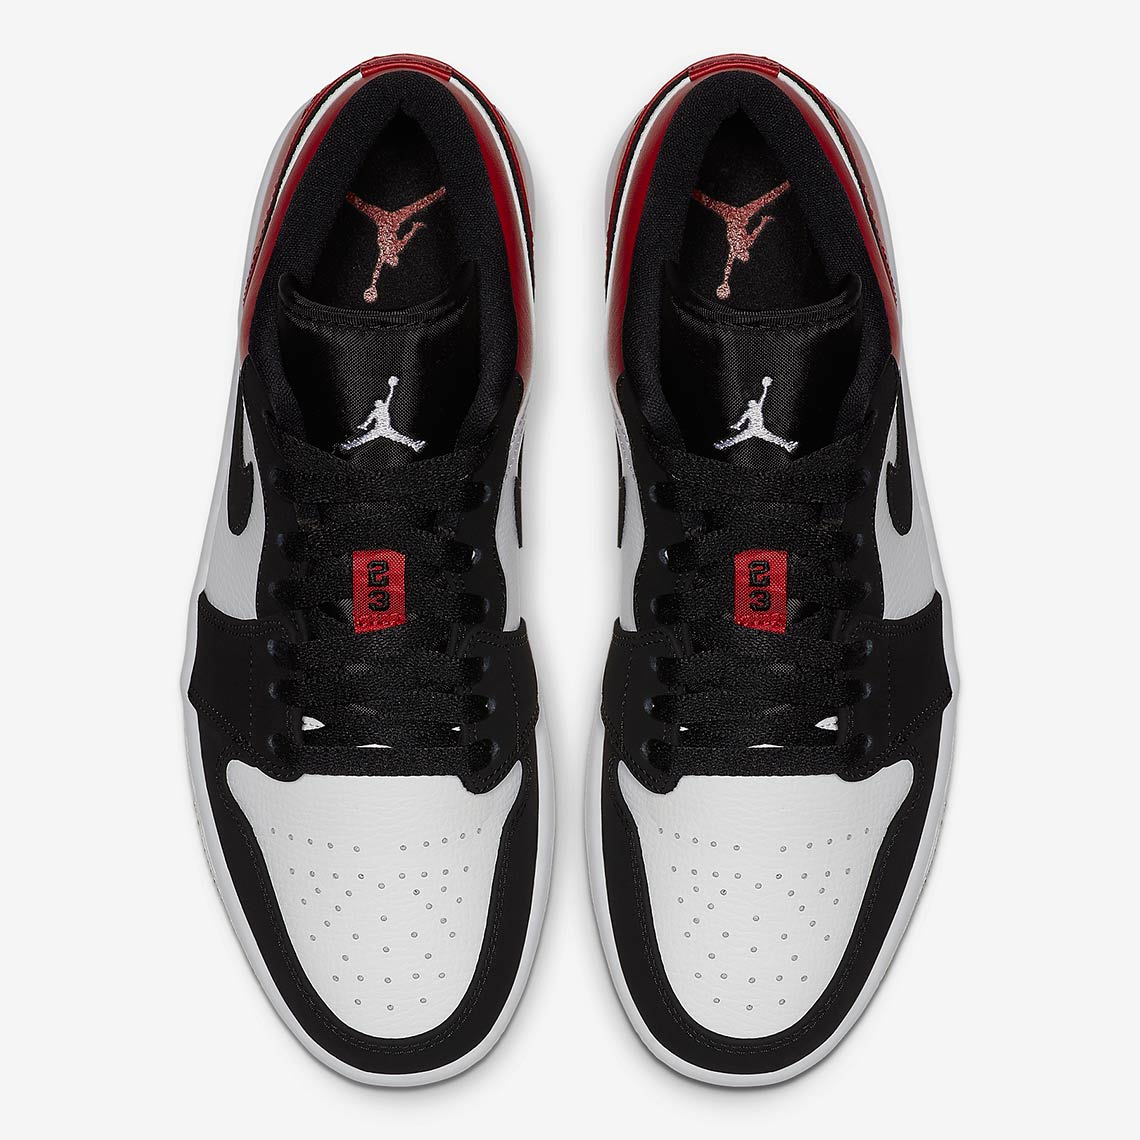 28bccecb25f Air Jordan 1 Low SB Black Toe 553558-116 Release Info | SneakerNews.com